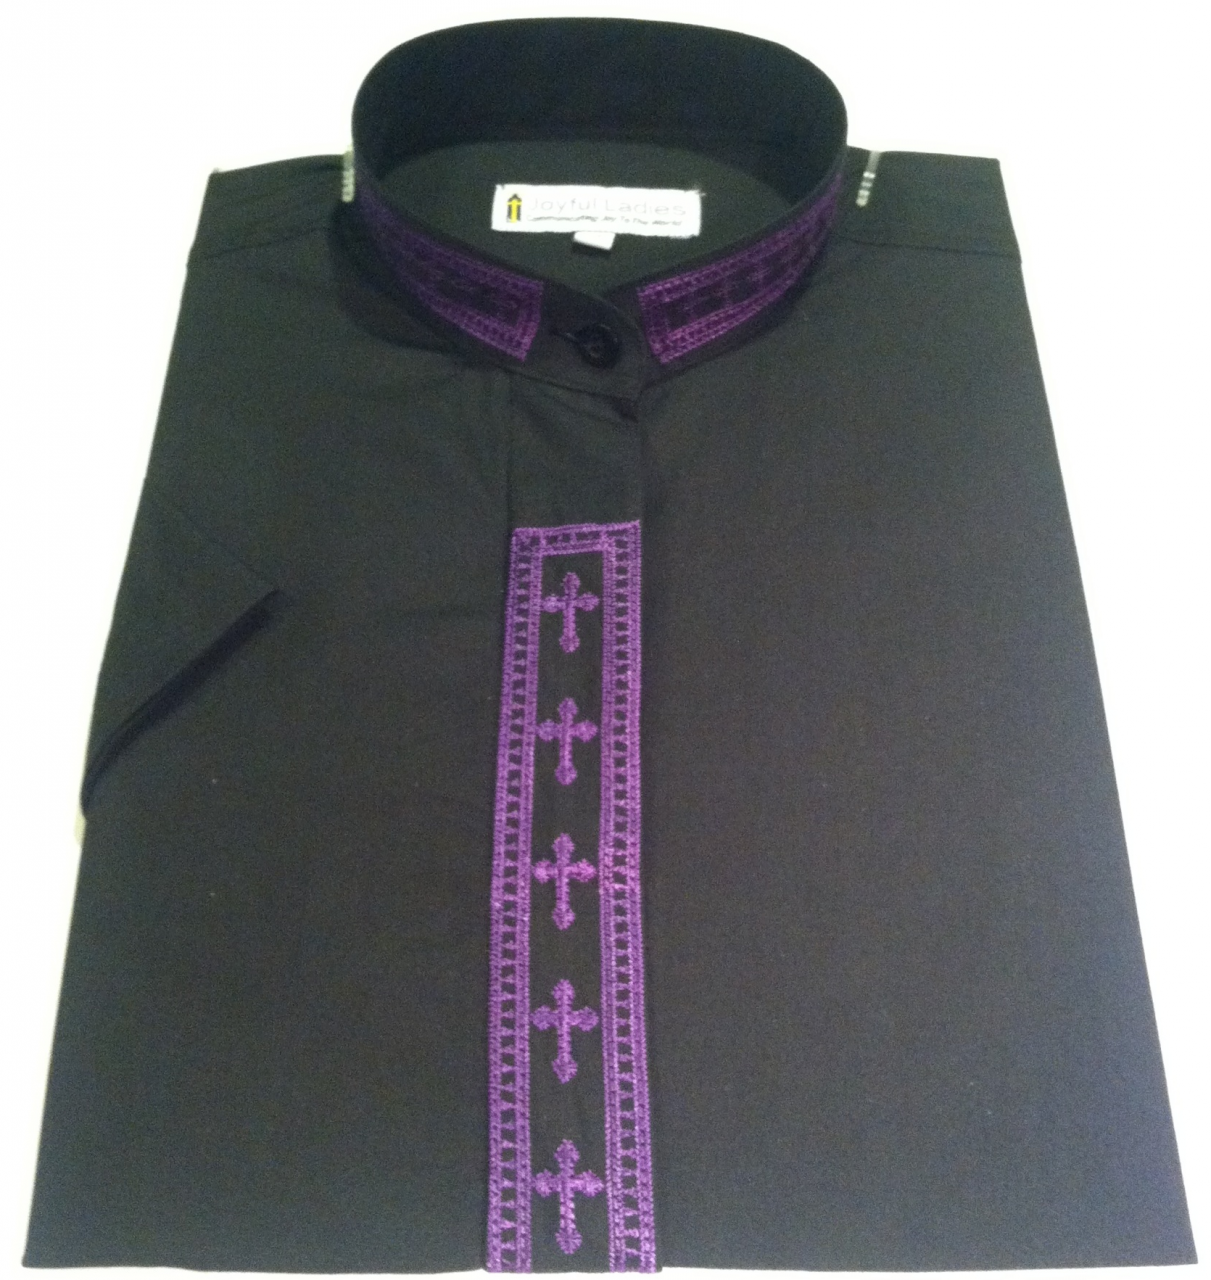 359. Men's Short-Sleeve Clergy Shirt With Fine Embroidery - Black/Purple